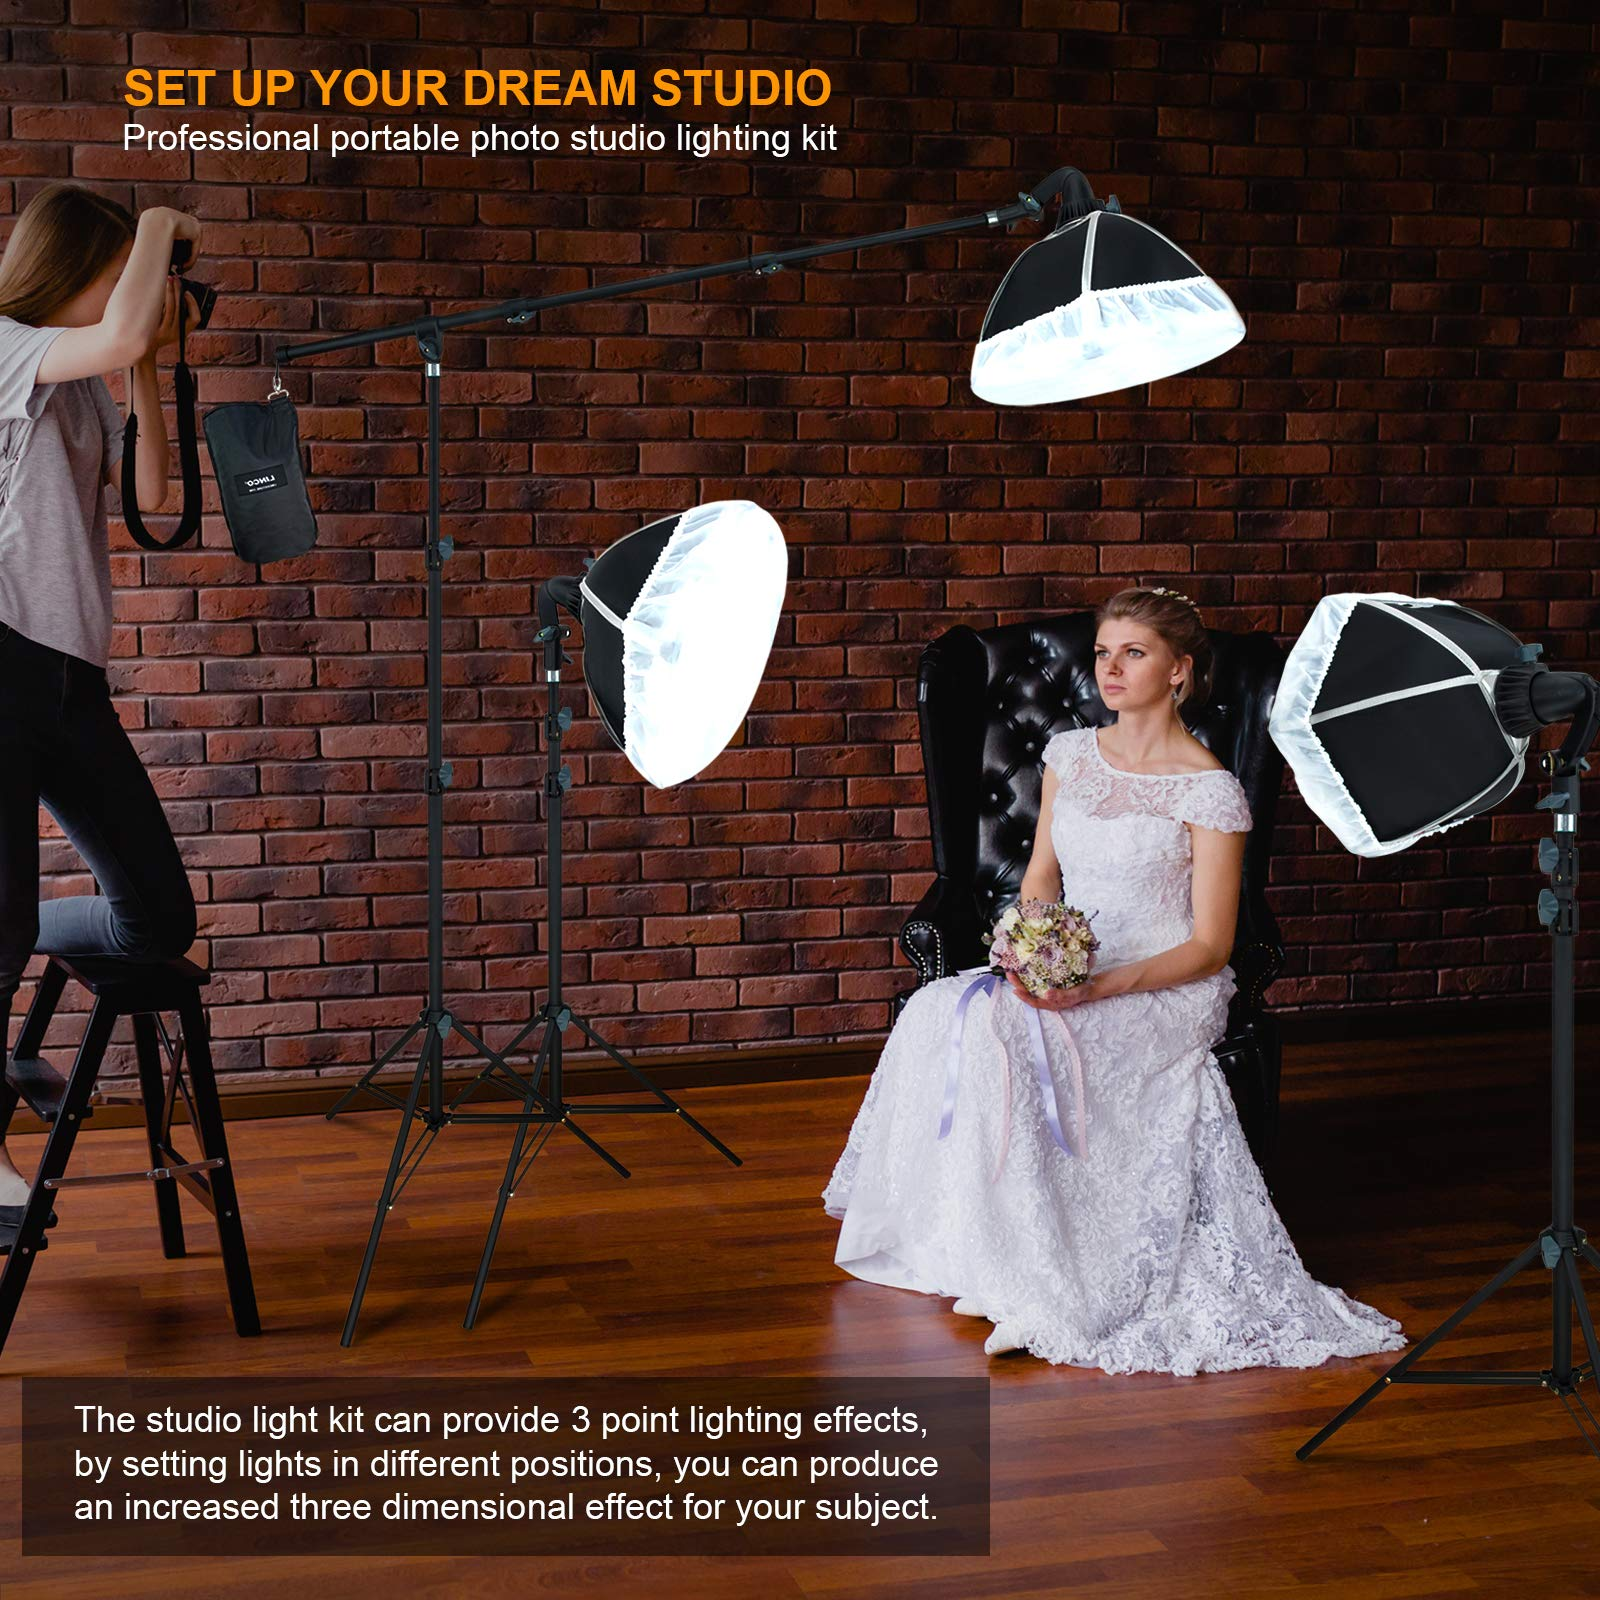 LINCO Lincostore Photography Studio Lighting Kit Arm for Video Continuous Lighting Shadow Boom Box Lights Set Headlight Softbox Setup with Daylight Bulbs 2400 Lumens AM261 by Linco (Image #7)